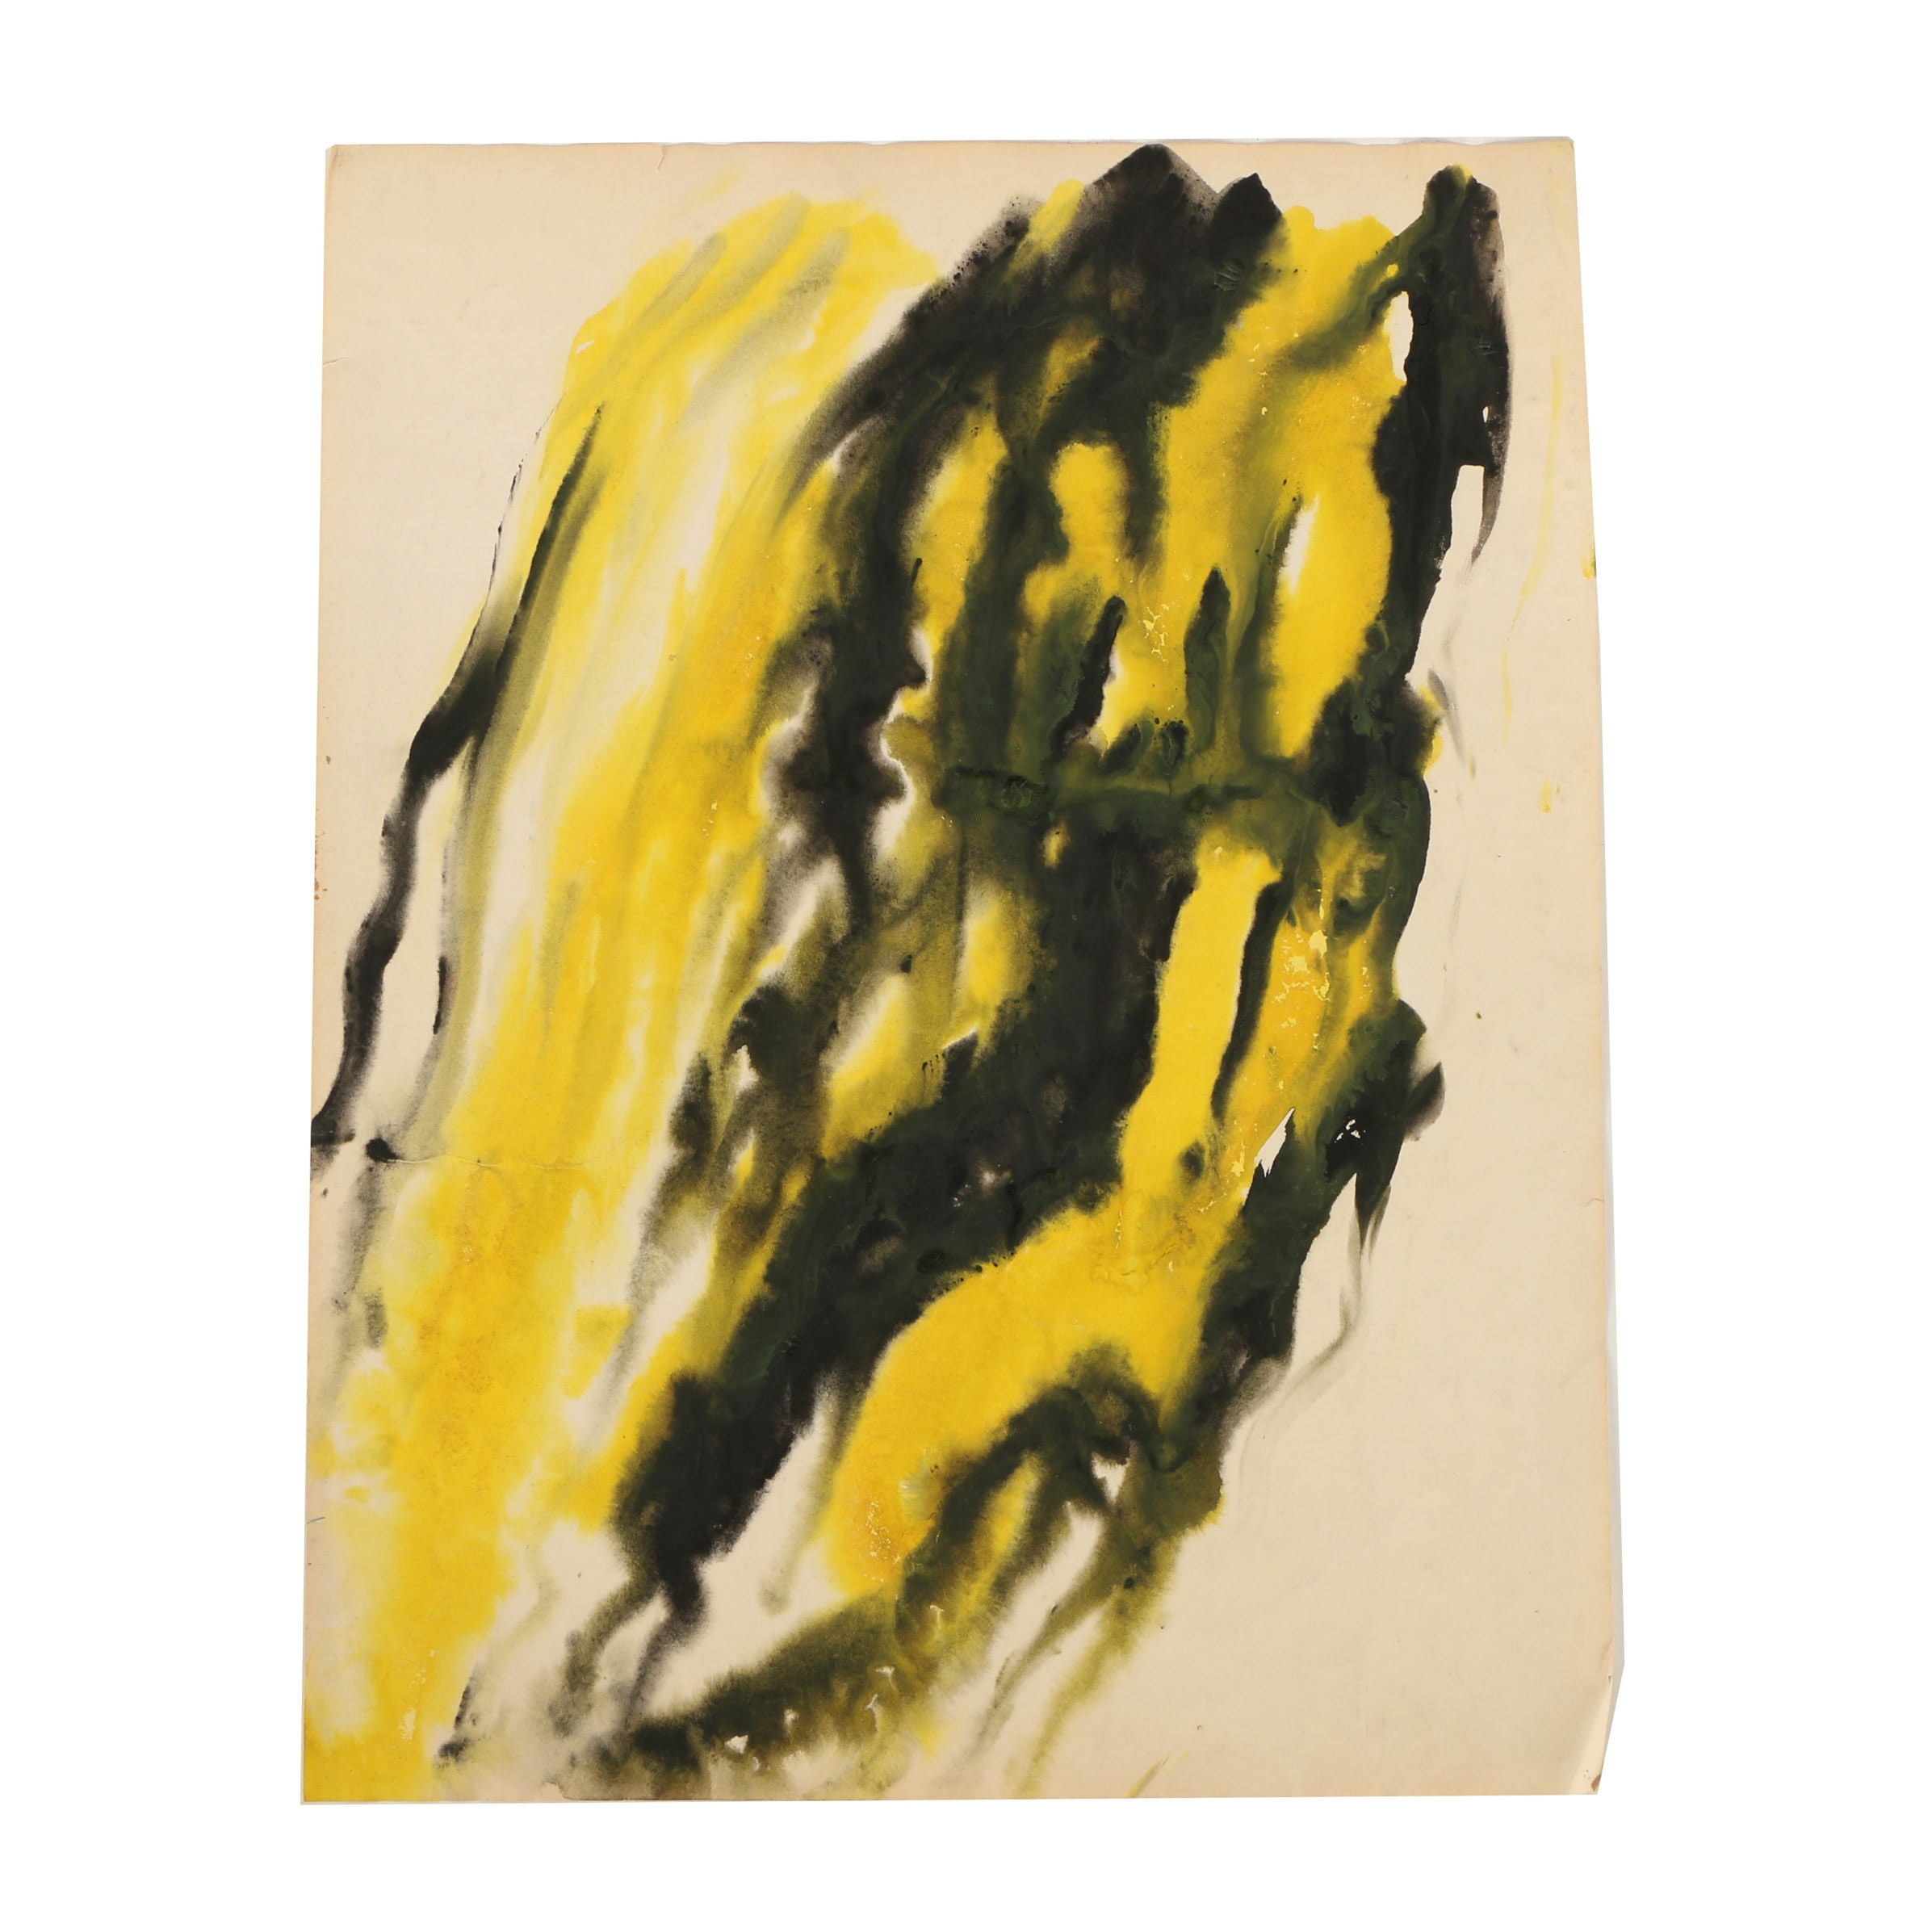 Abstract Watercolor Painting Attributed to Marco De Marco